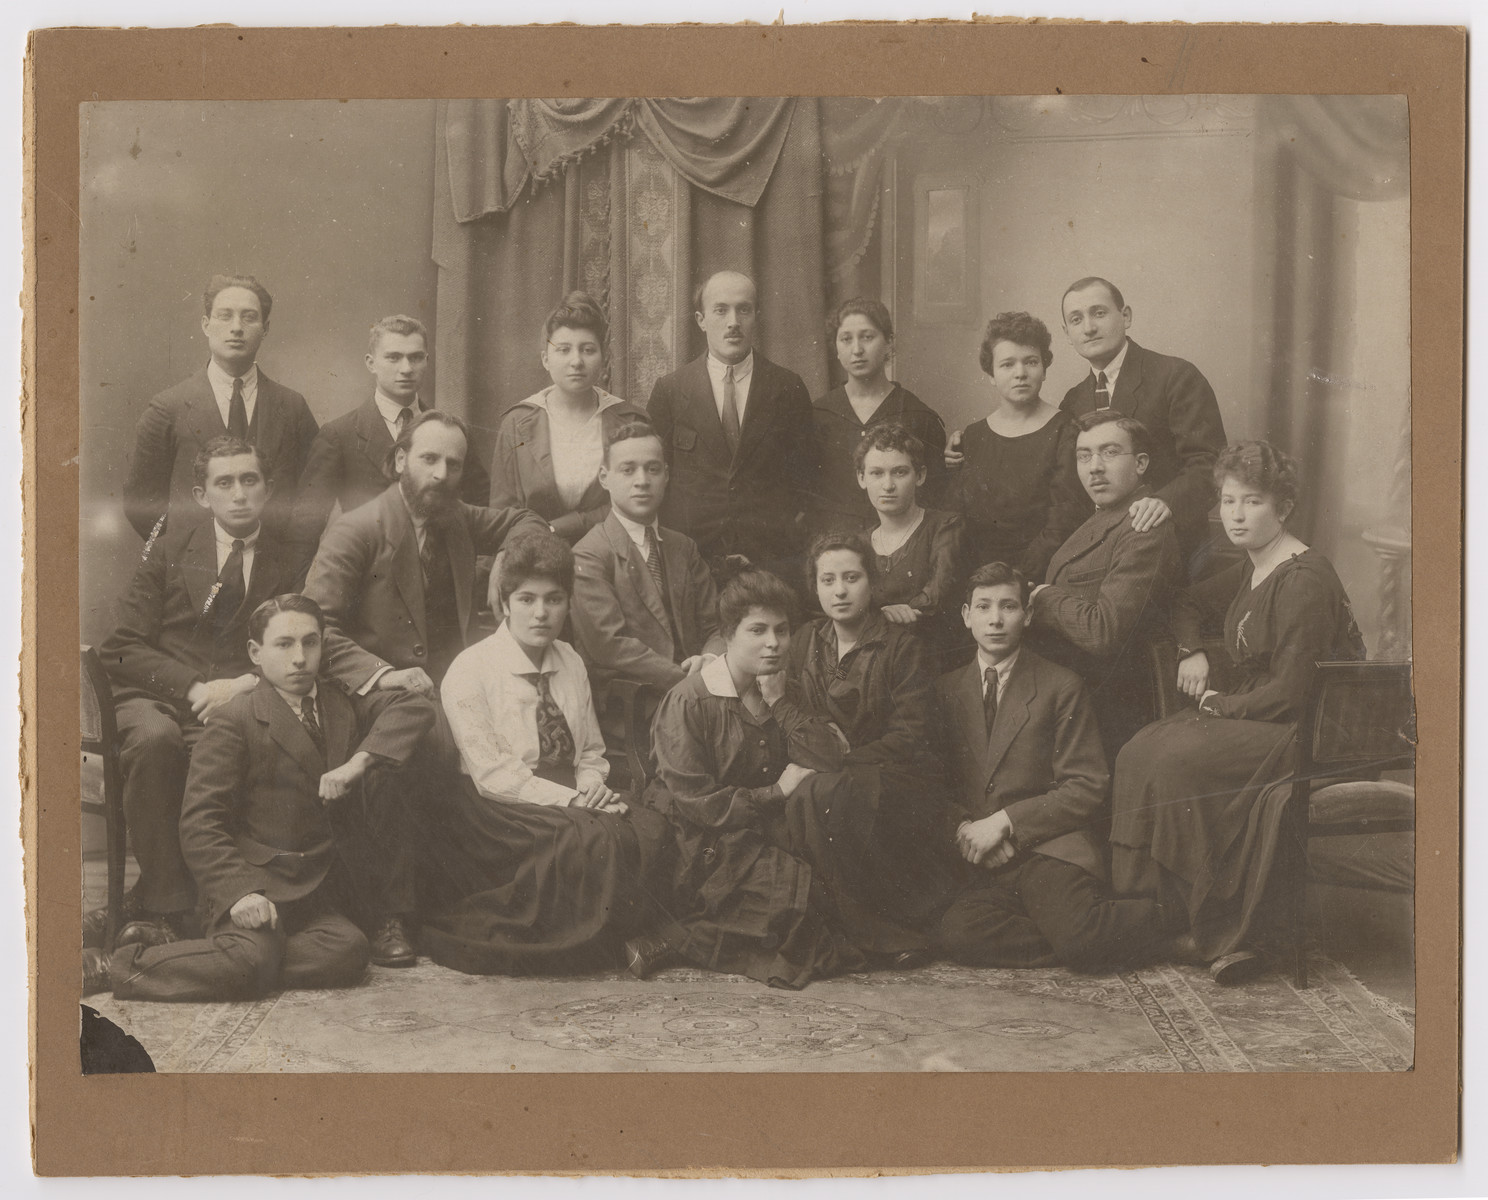 Group portrait of Jewish youth in an unidentified social club in Vilna.